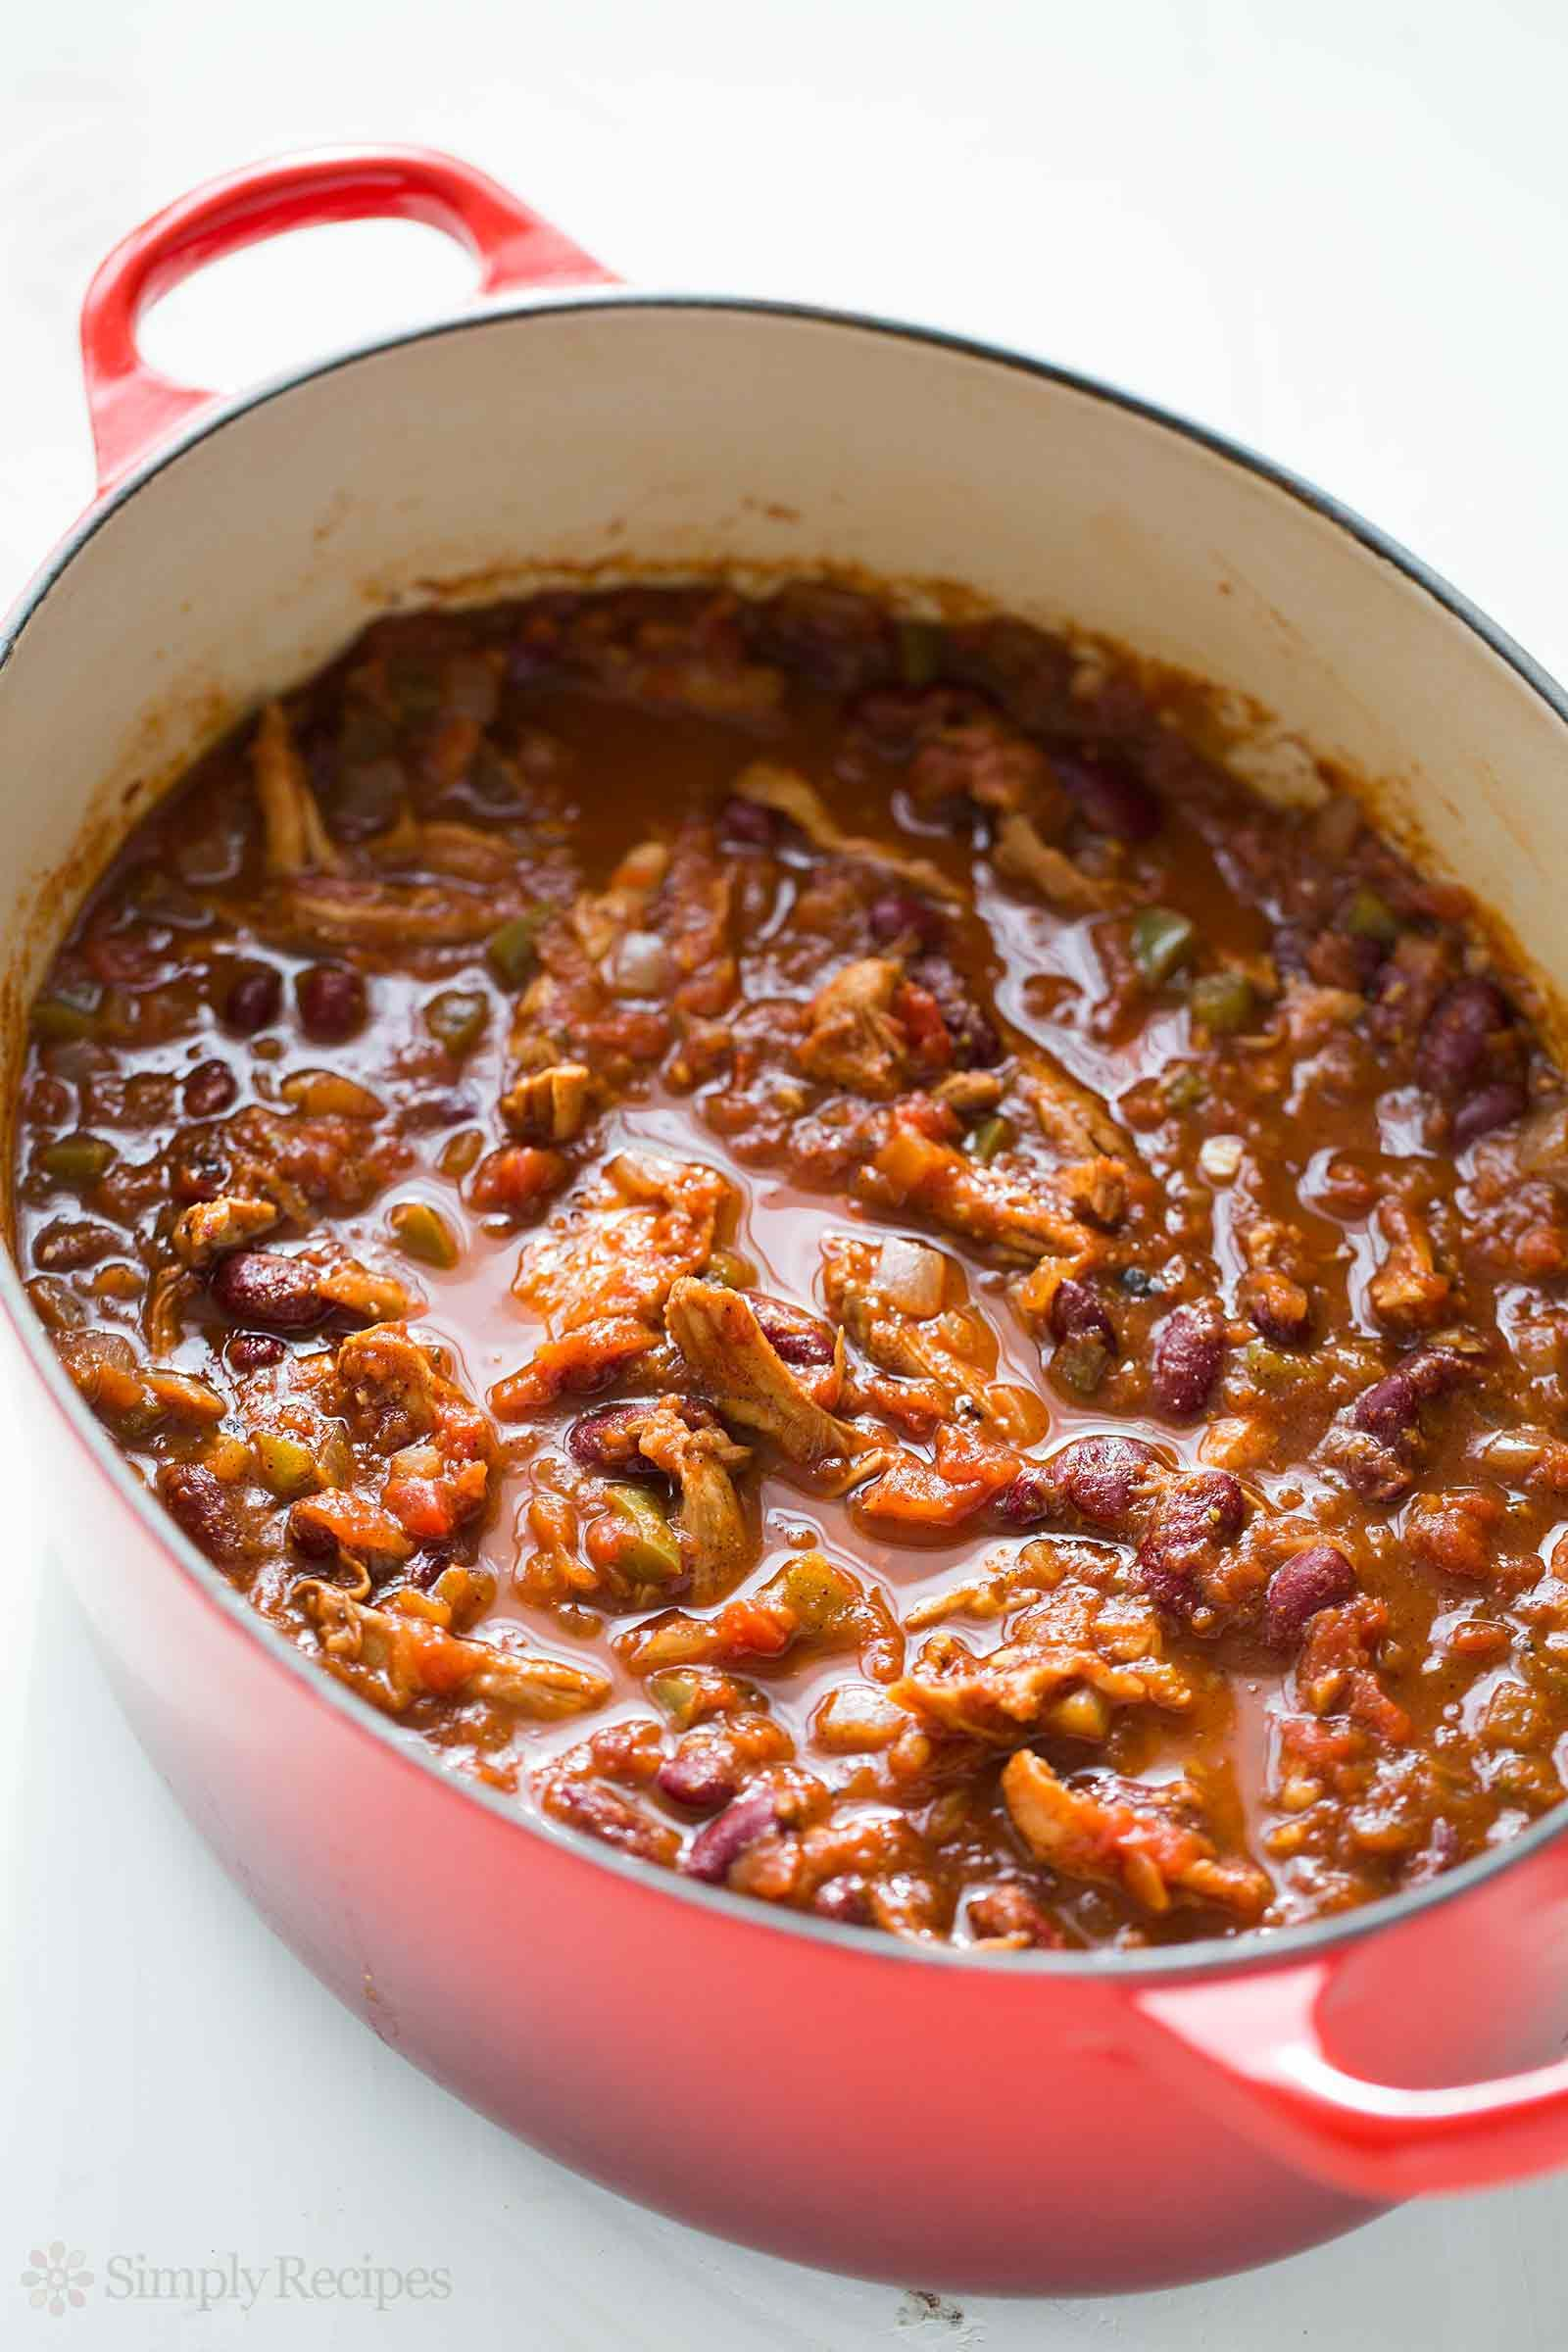 Turkey Chili With Leftover Turkey Recipe Leftover Turkey Recipes Chili Recipe Turkey Turkey Recipes